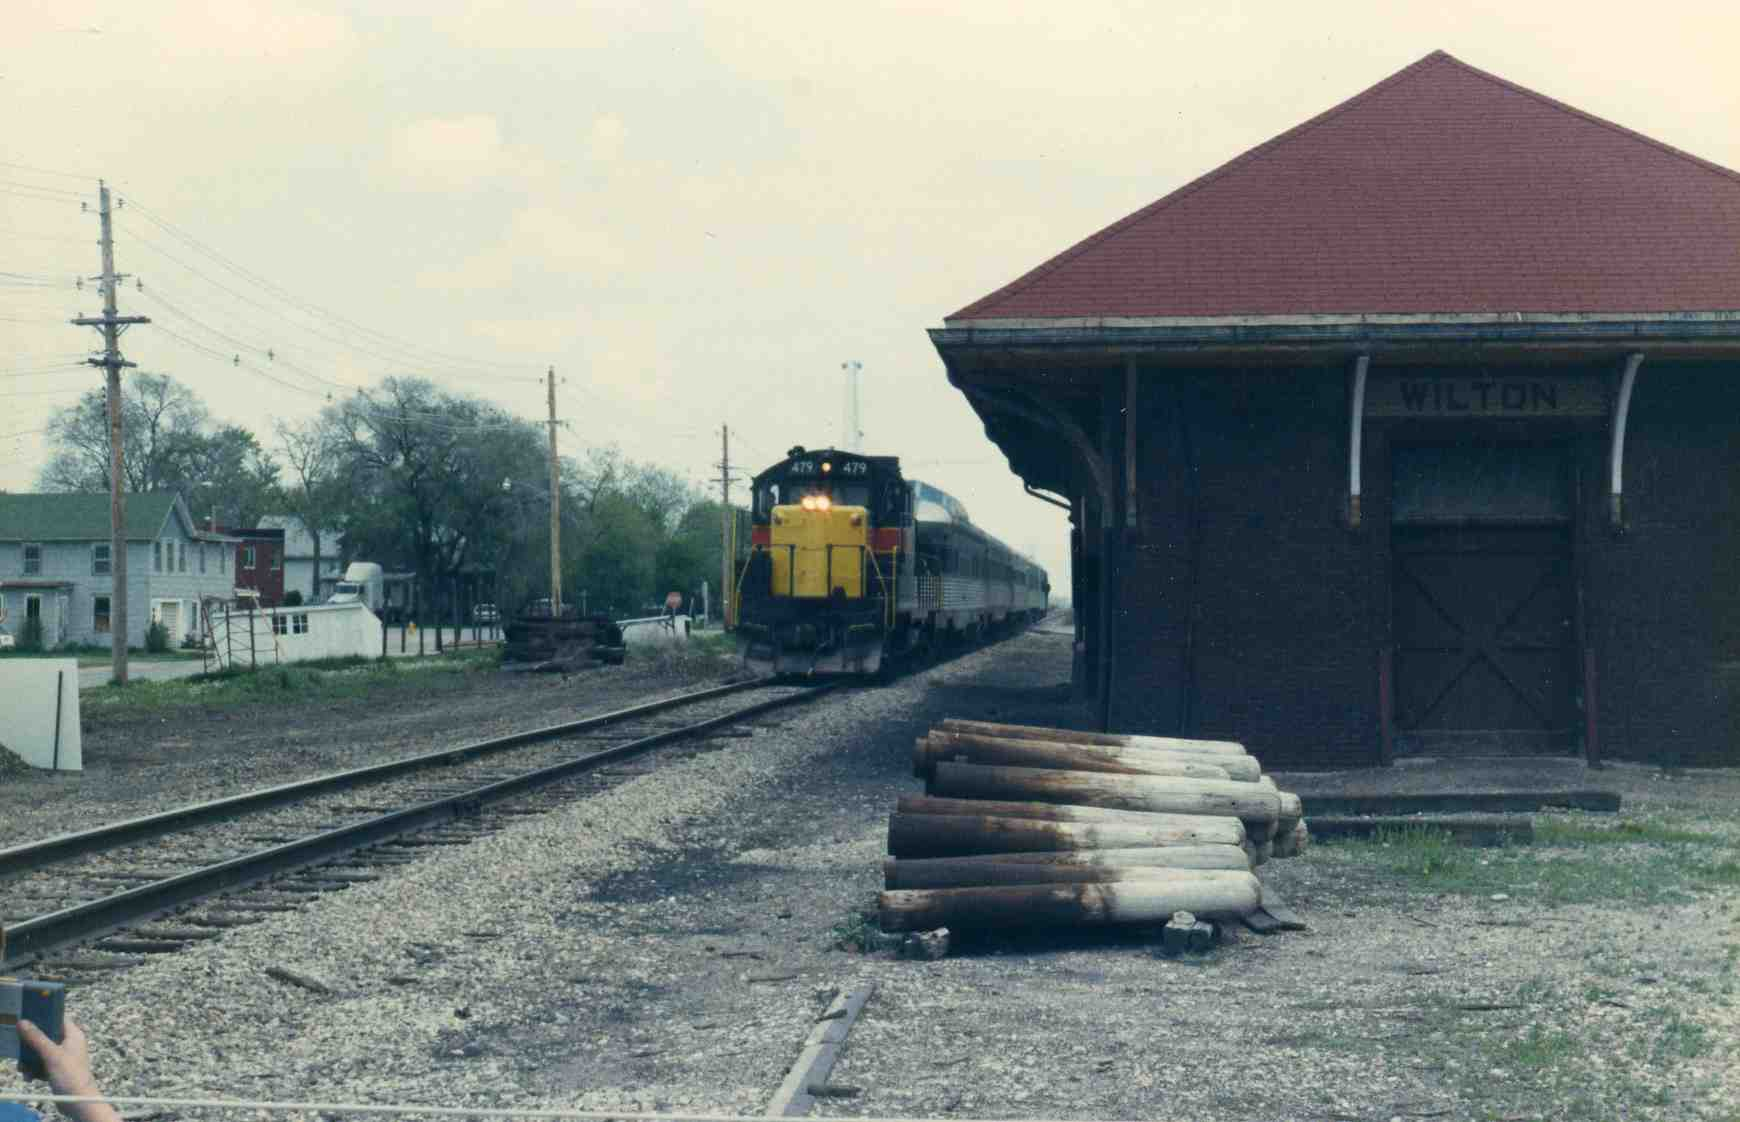 479 and the Quad City Rocket approach the Wilton depot